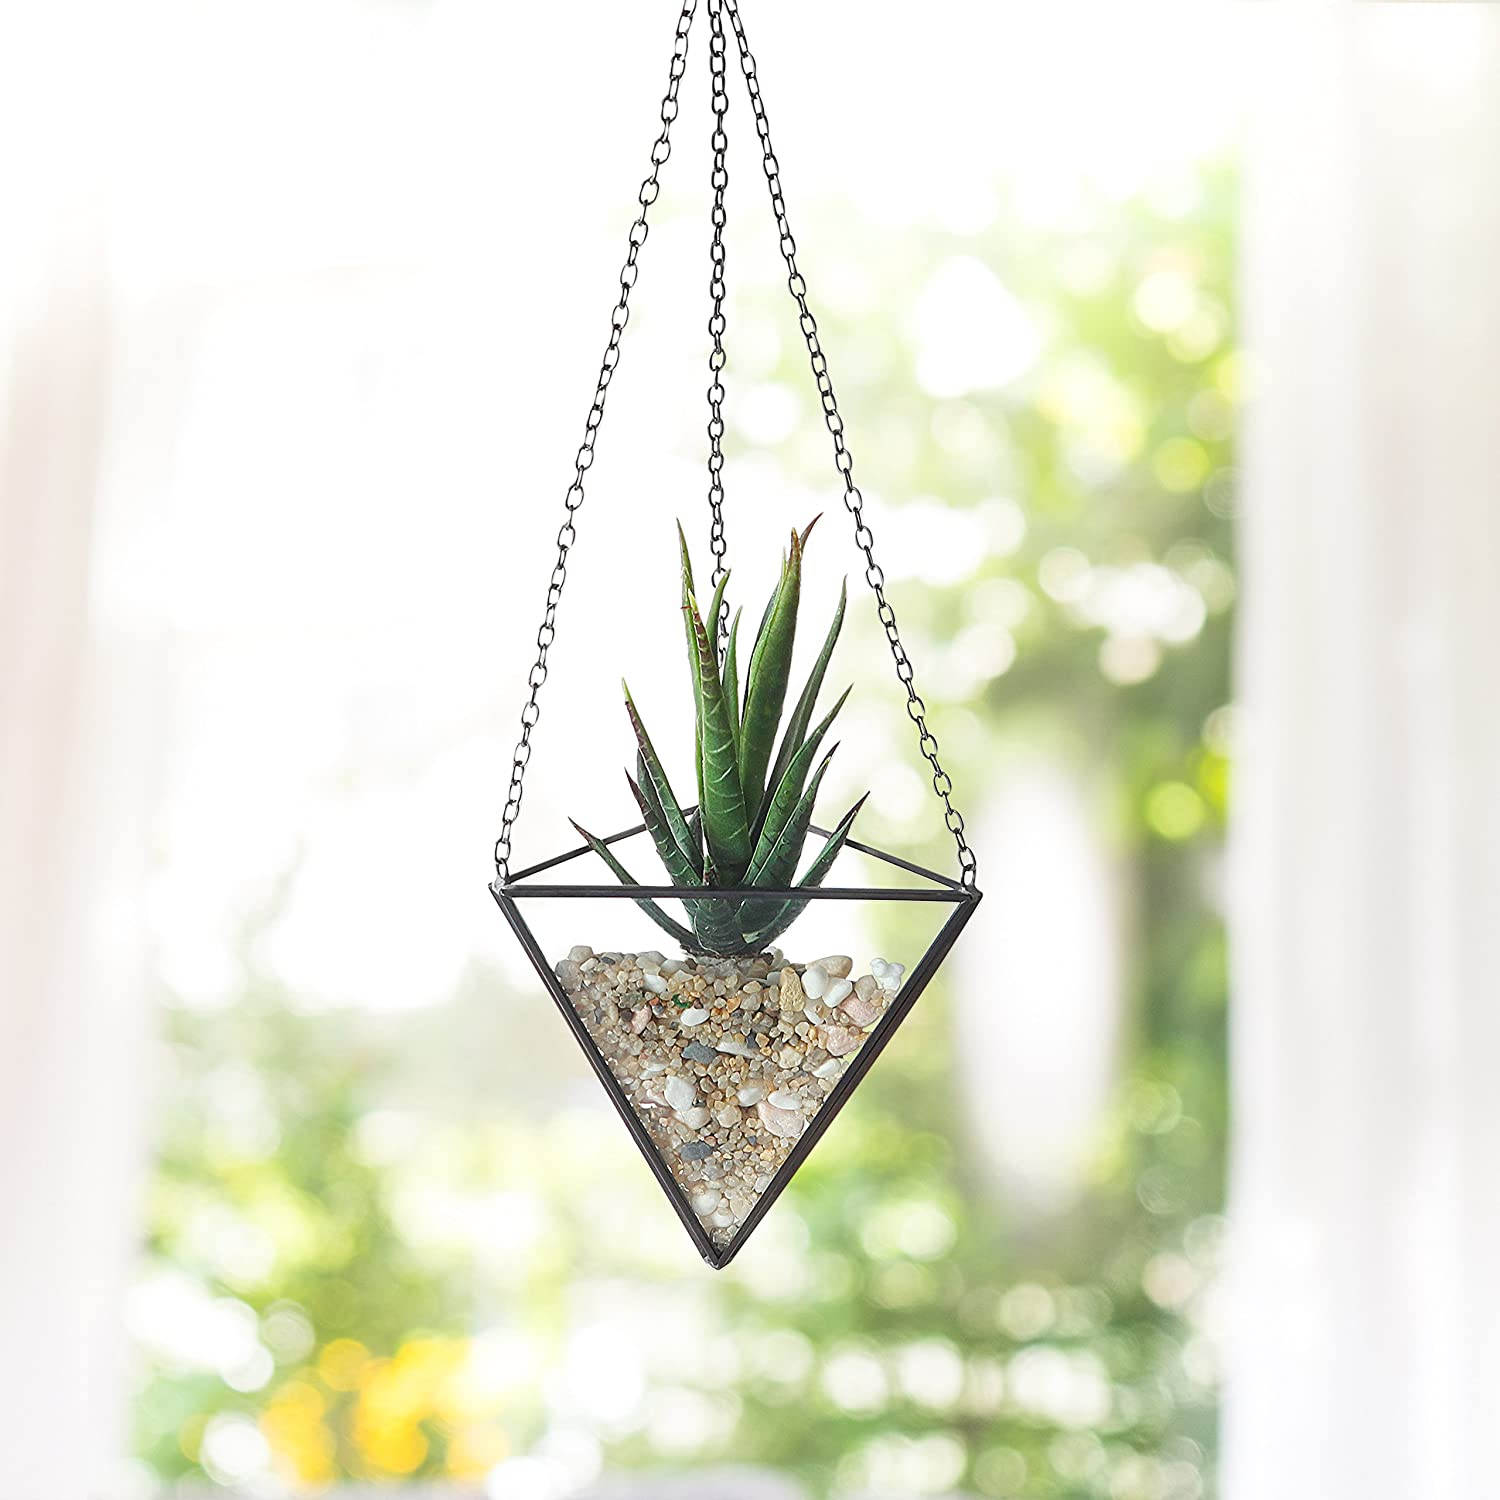 Amazoncom Clear Glass 4 Inch Hanging Pyramid Air Plant Terrarium, Succulent